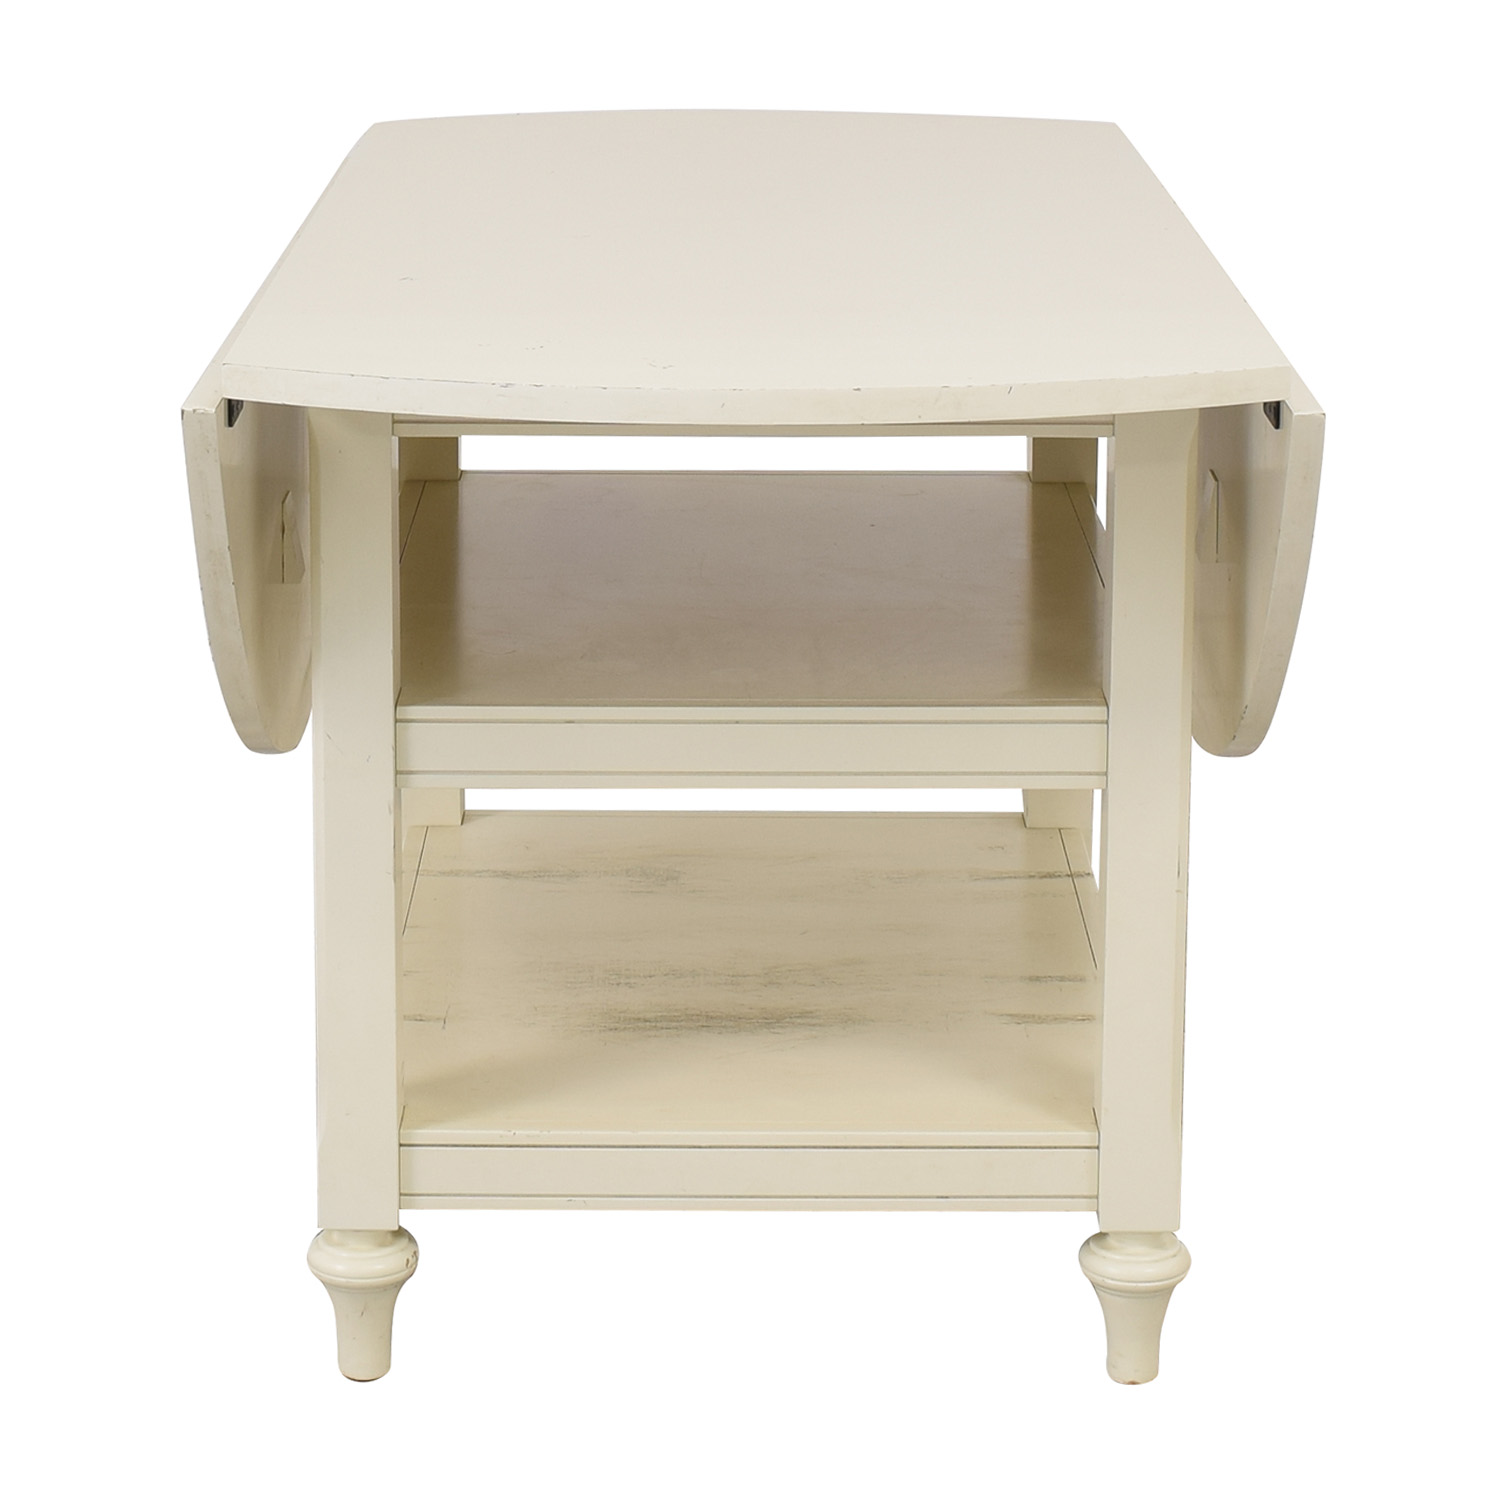 Pottery Barn Pottery Barn Shayne Drop-Leaf Table nj